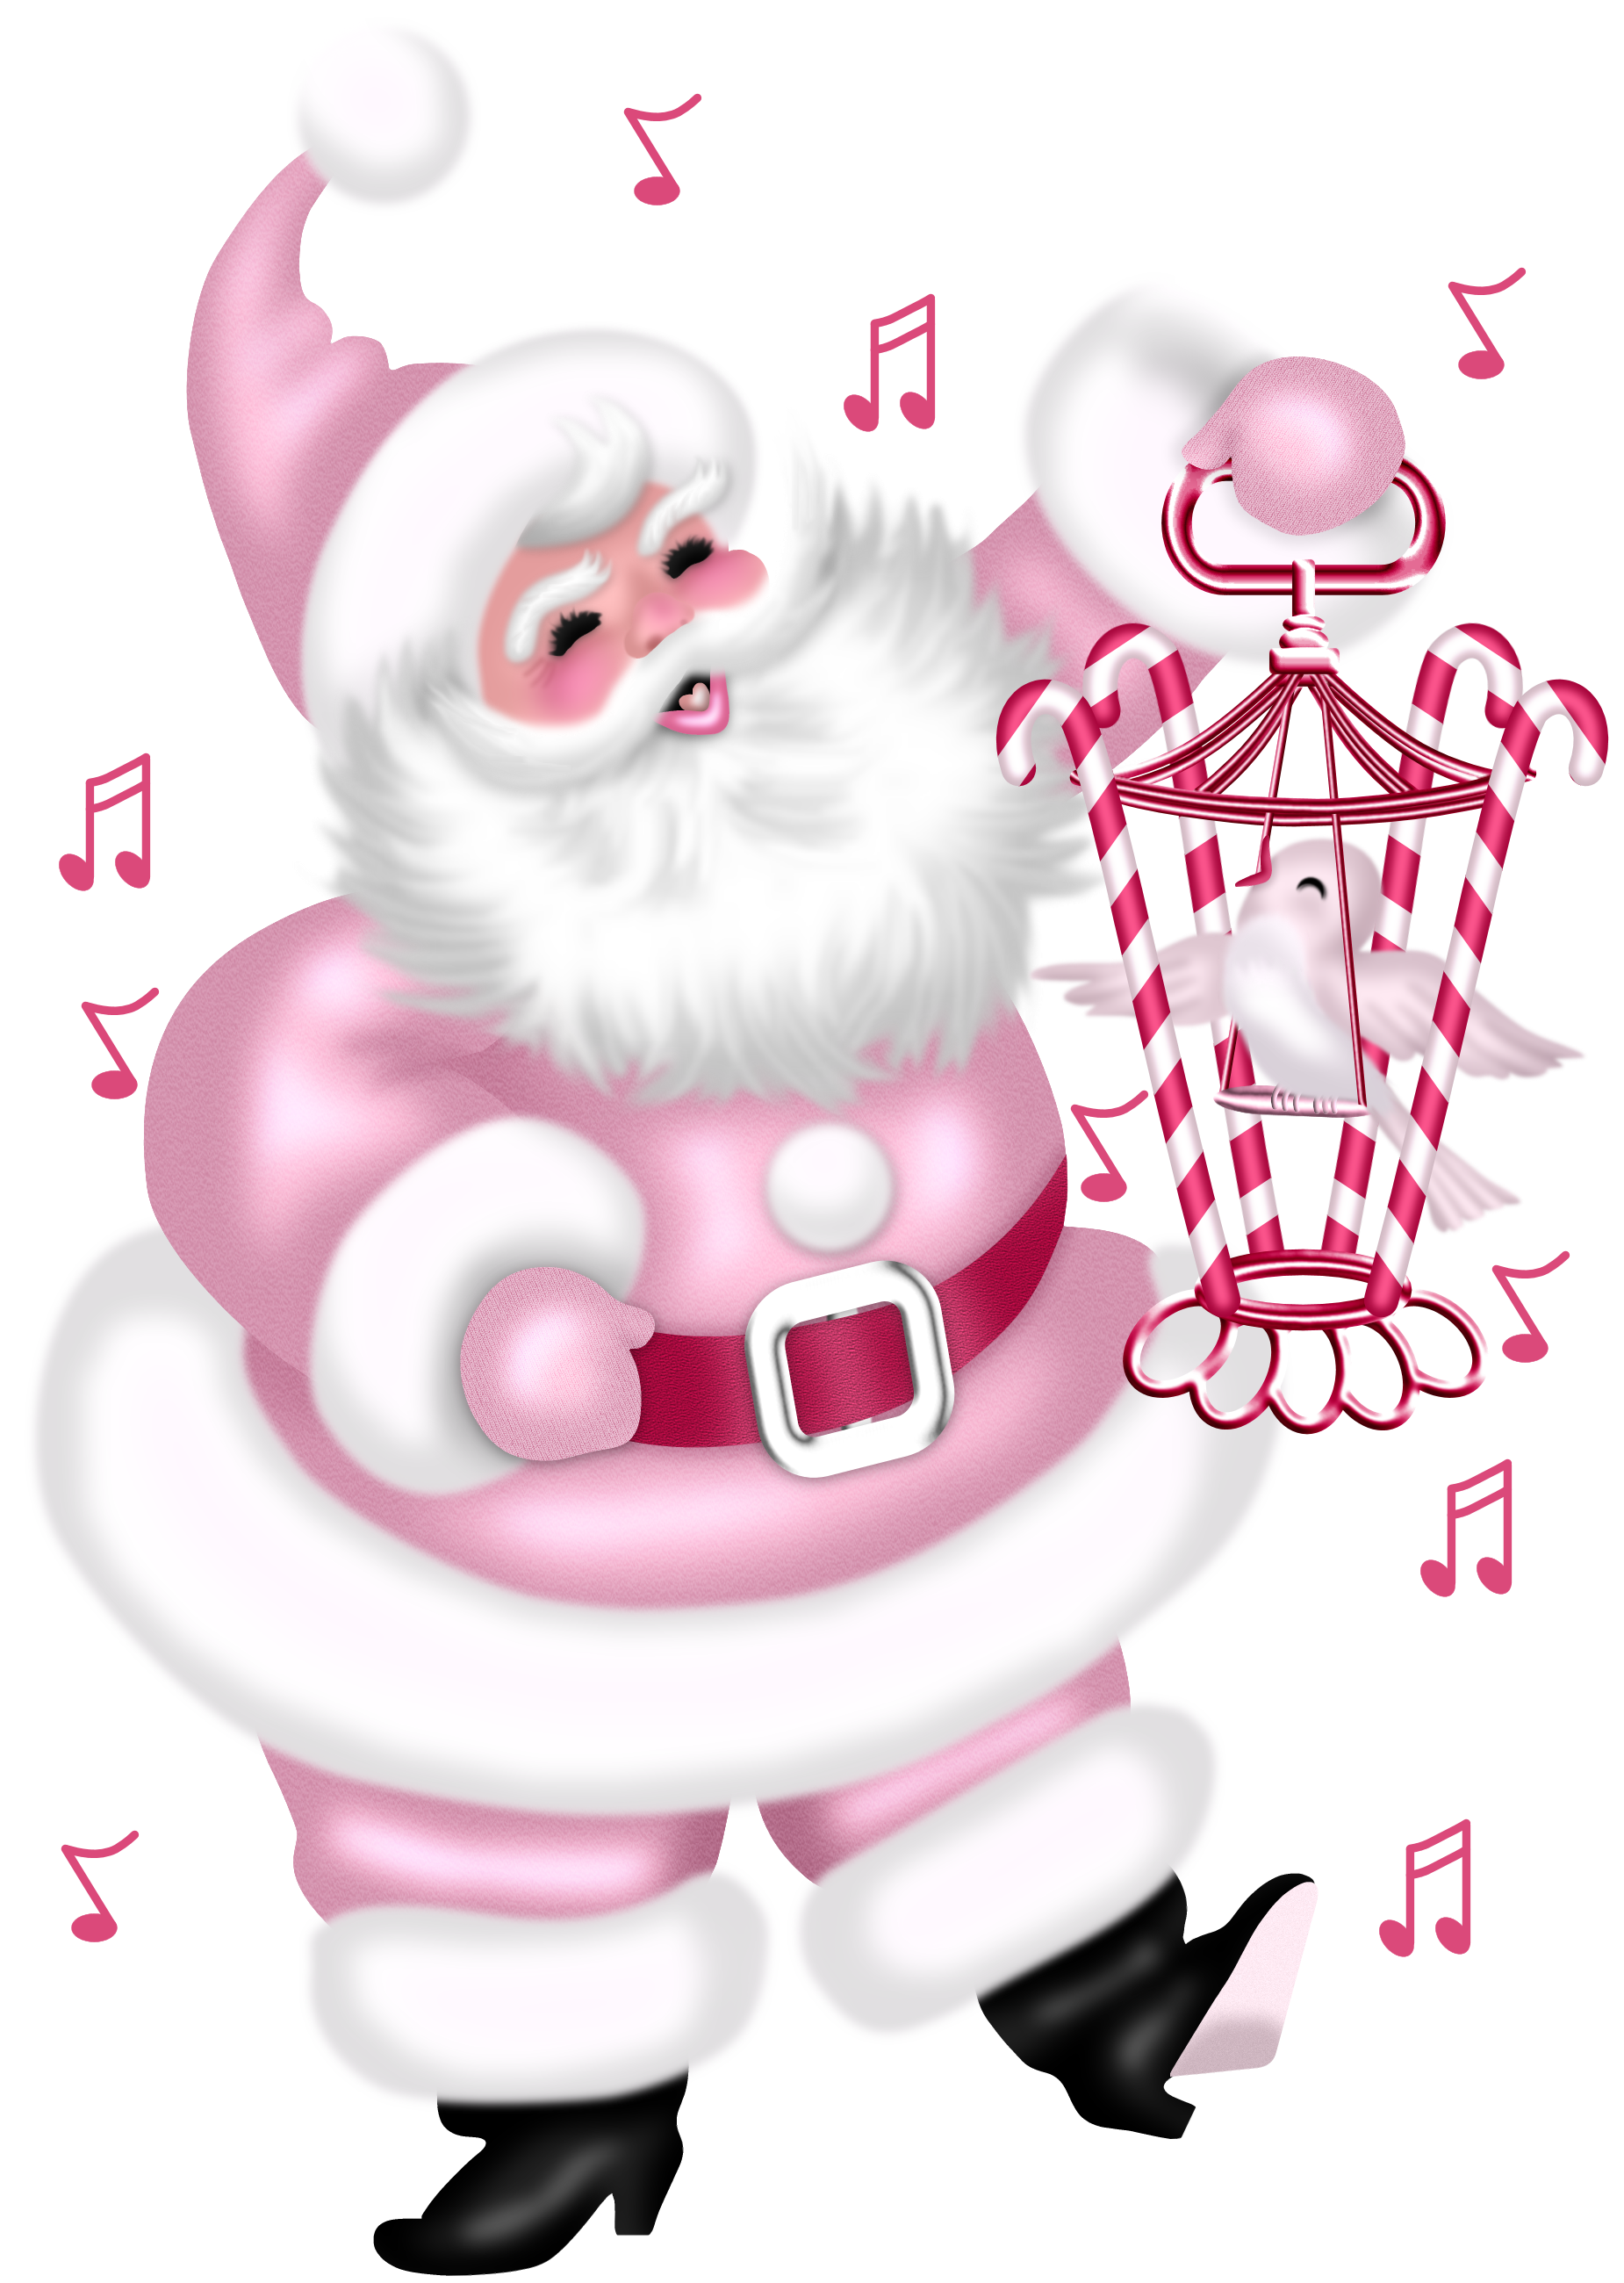 merry christmas clipart pink